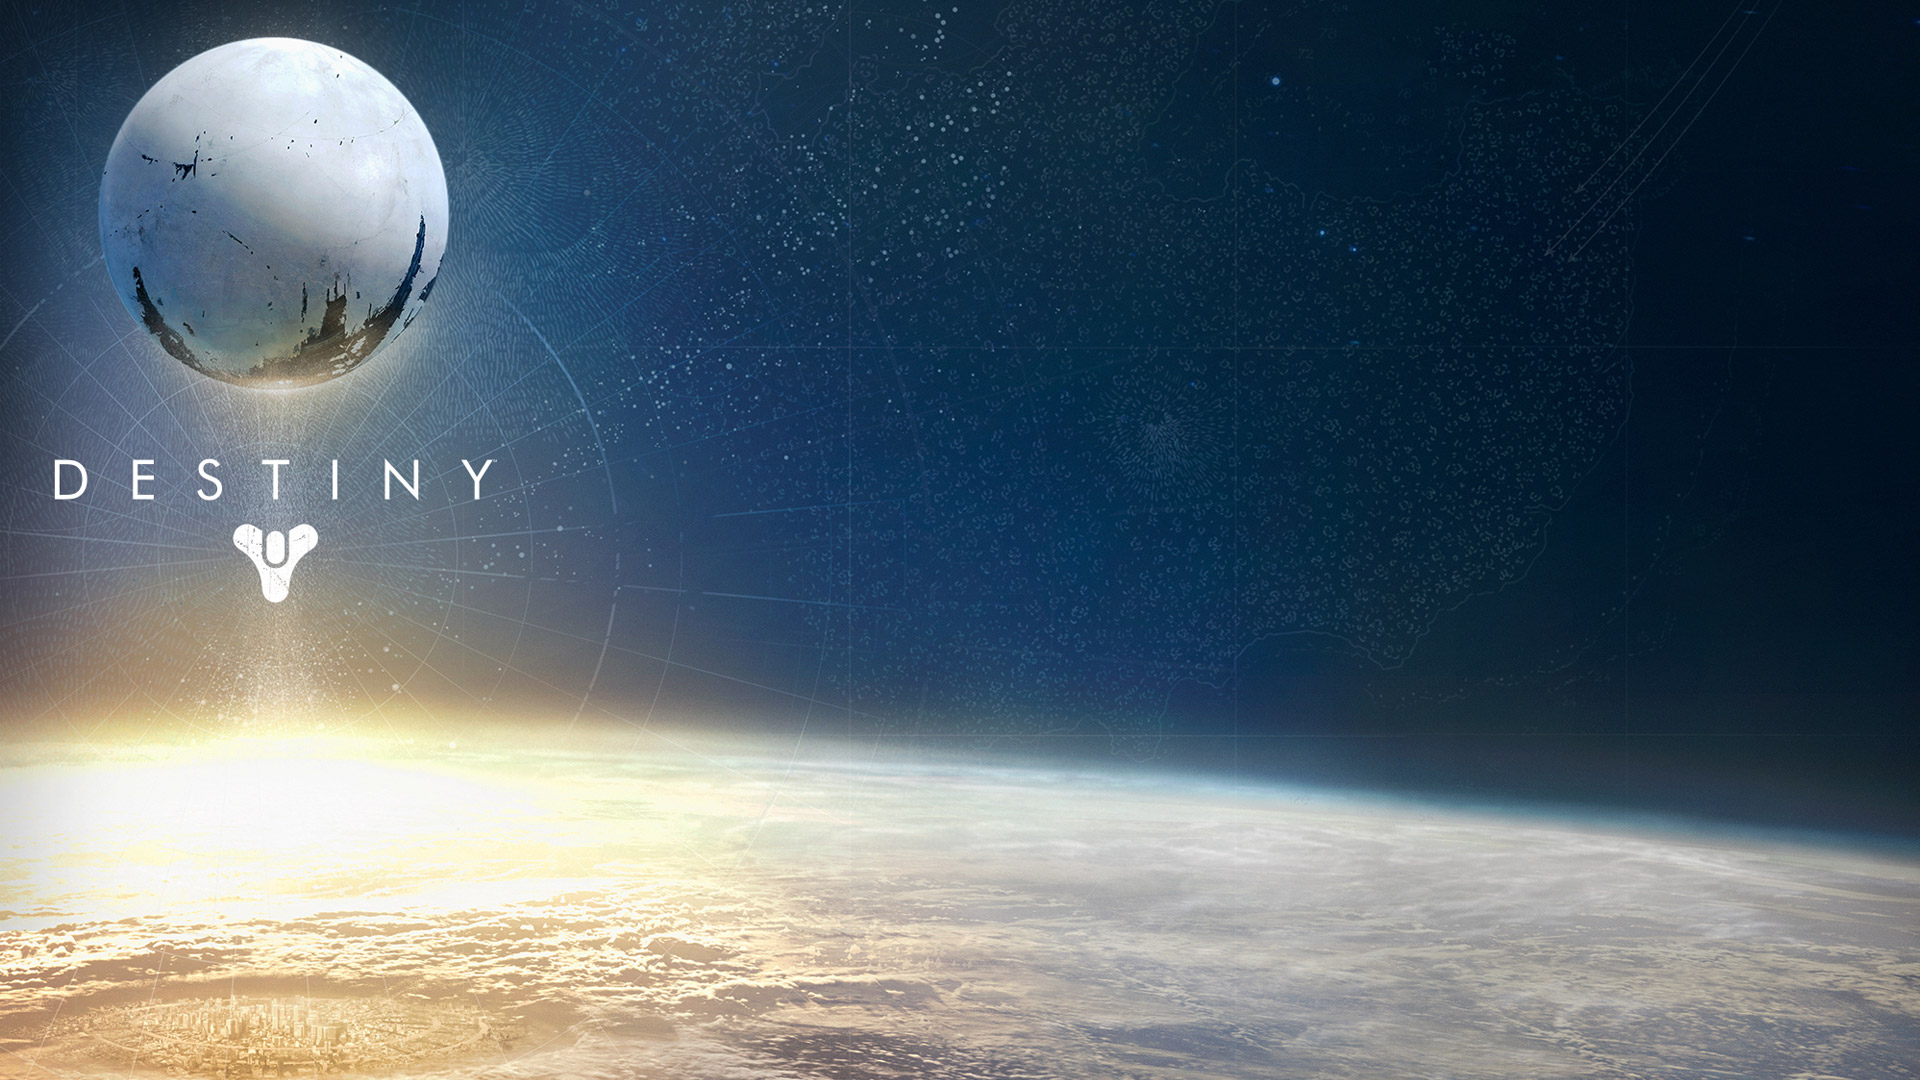 destiny wallpaper 25 - photo #30